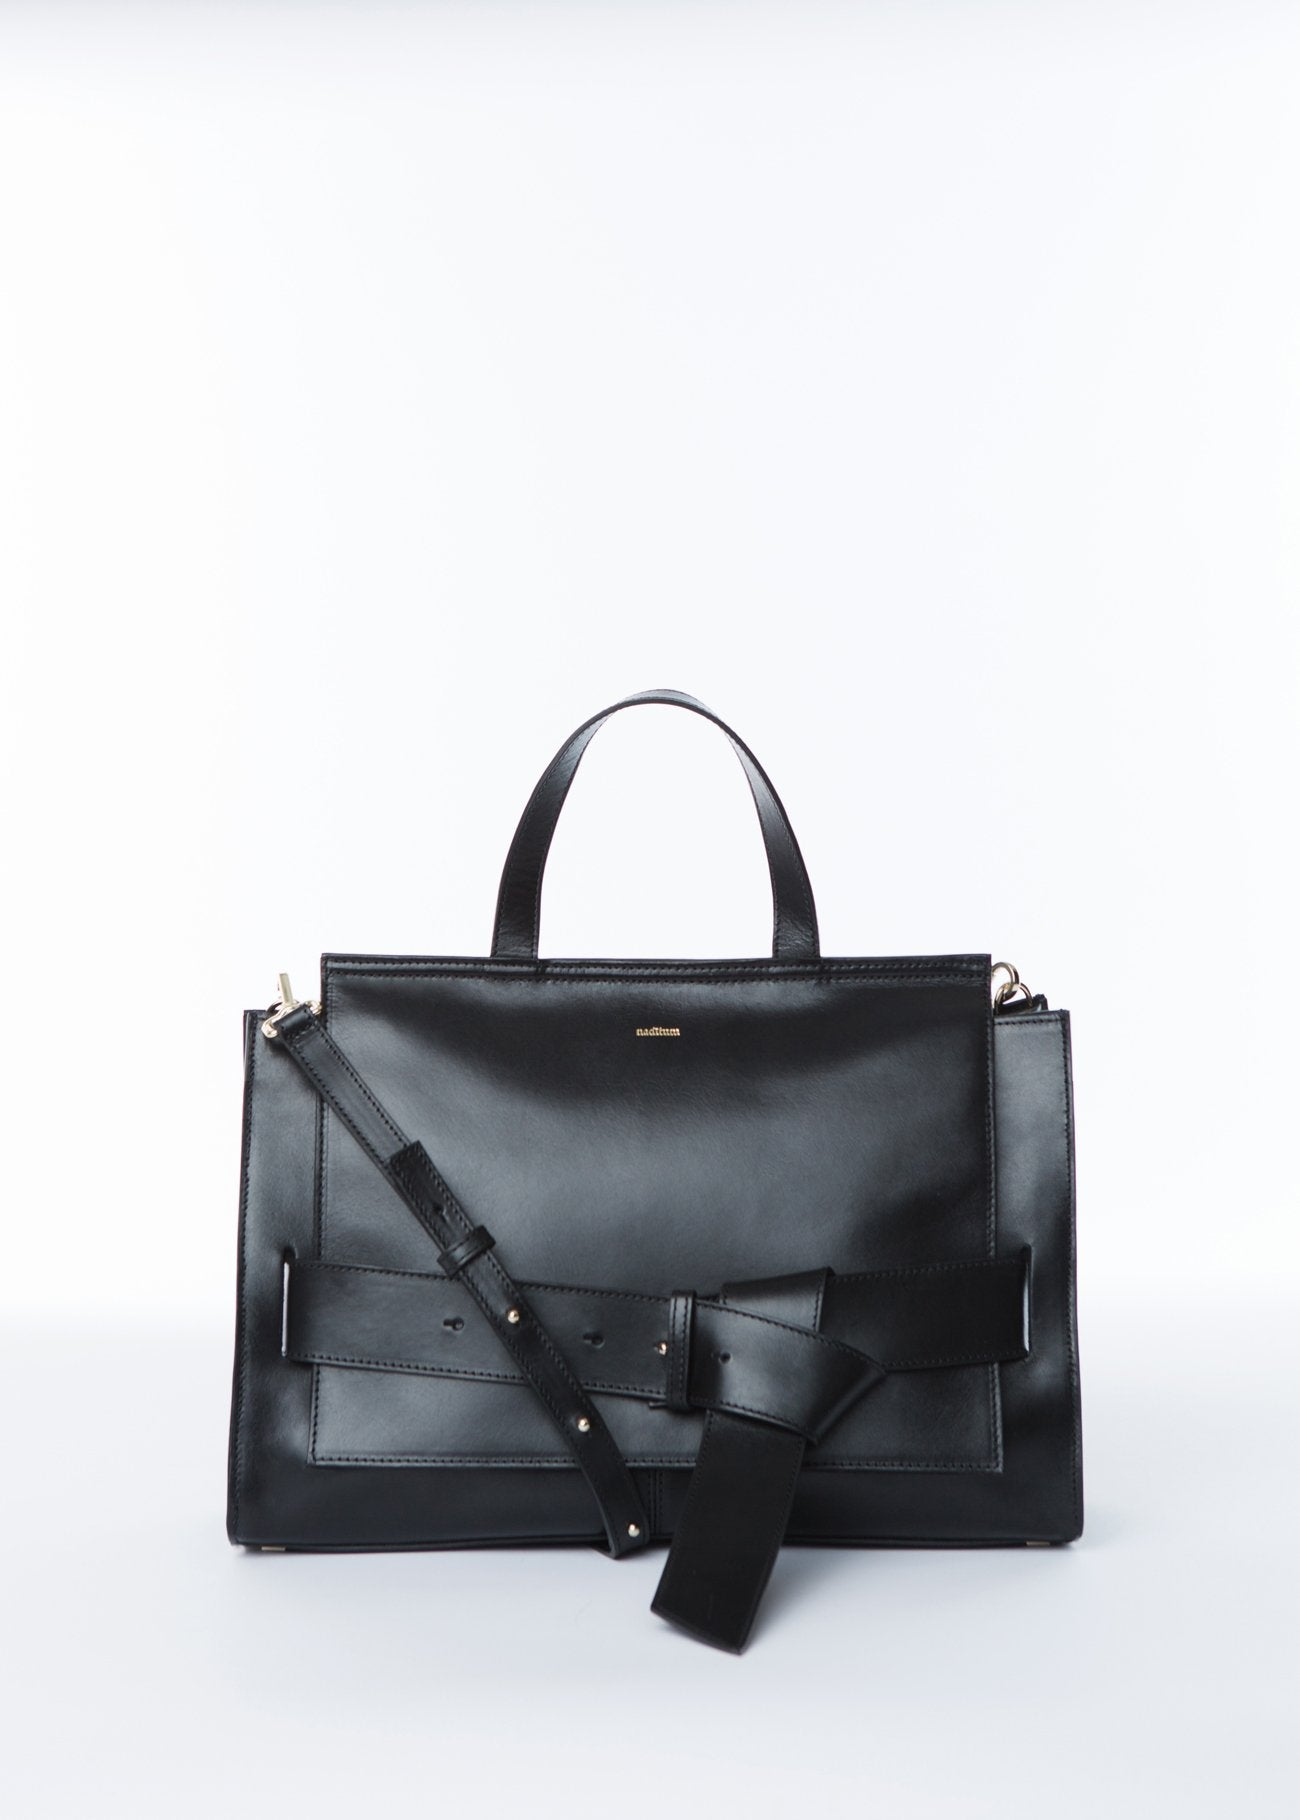 ISHTAR LADY BAG | BLACK bags from nadītum curated by pu·rist